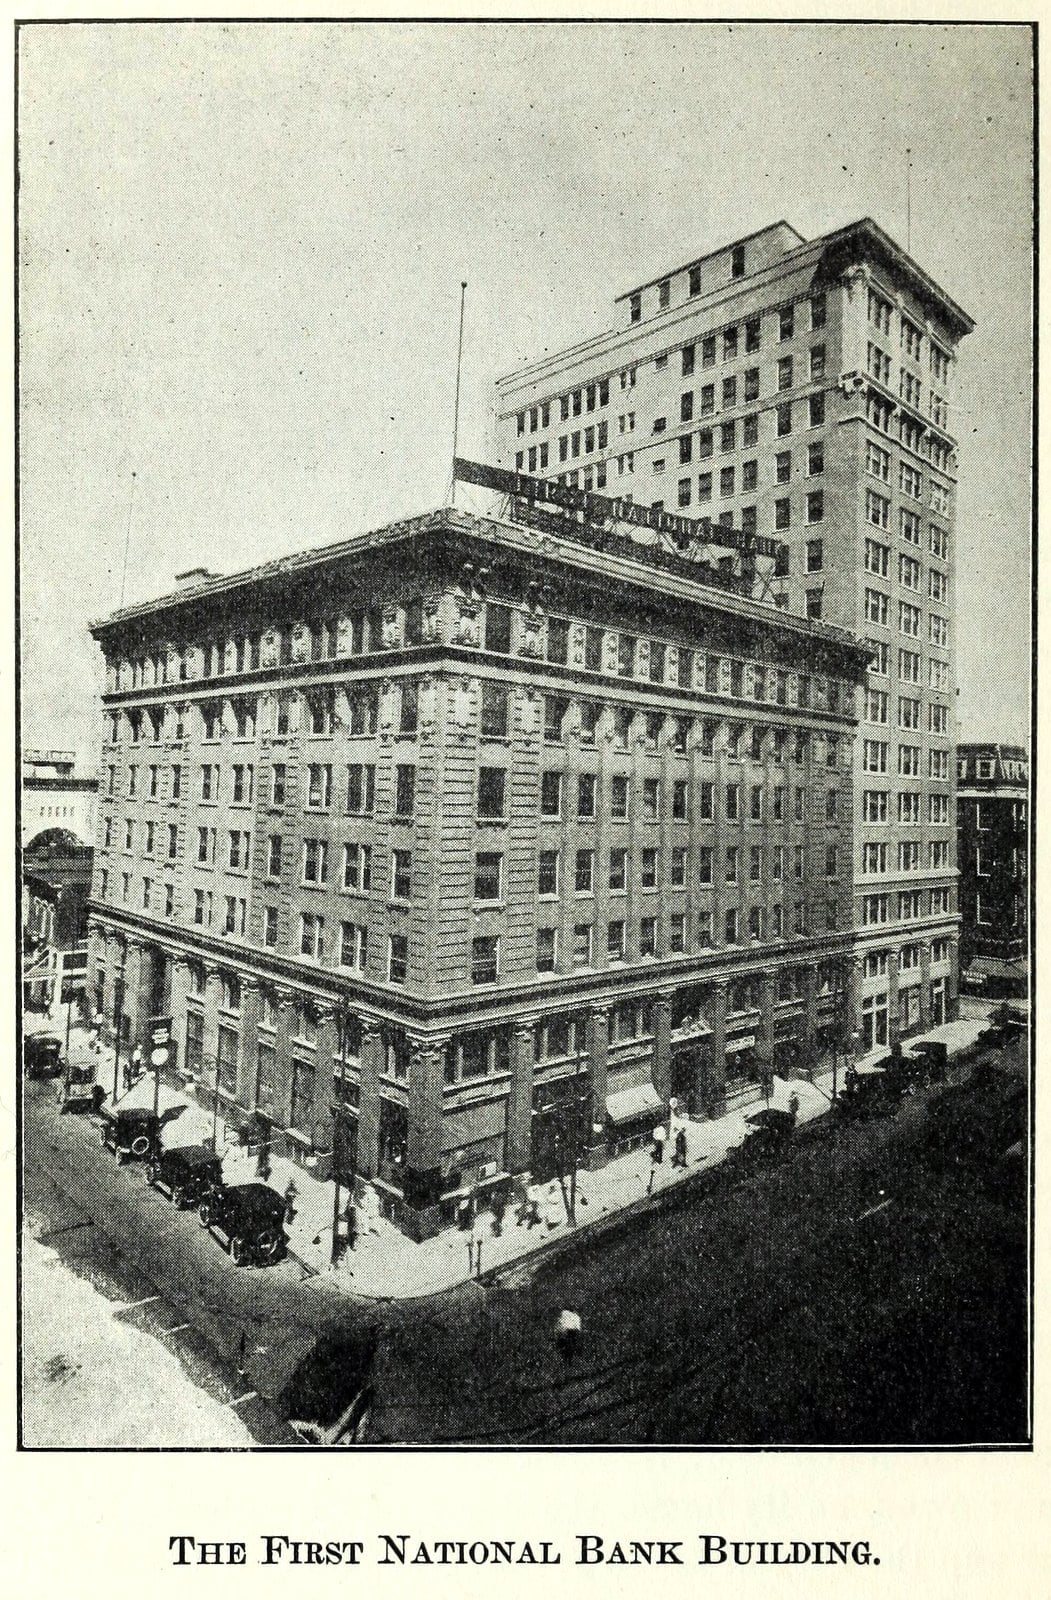 First National Bank Building in El Paso Texas (1923)